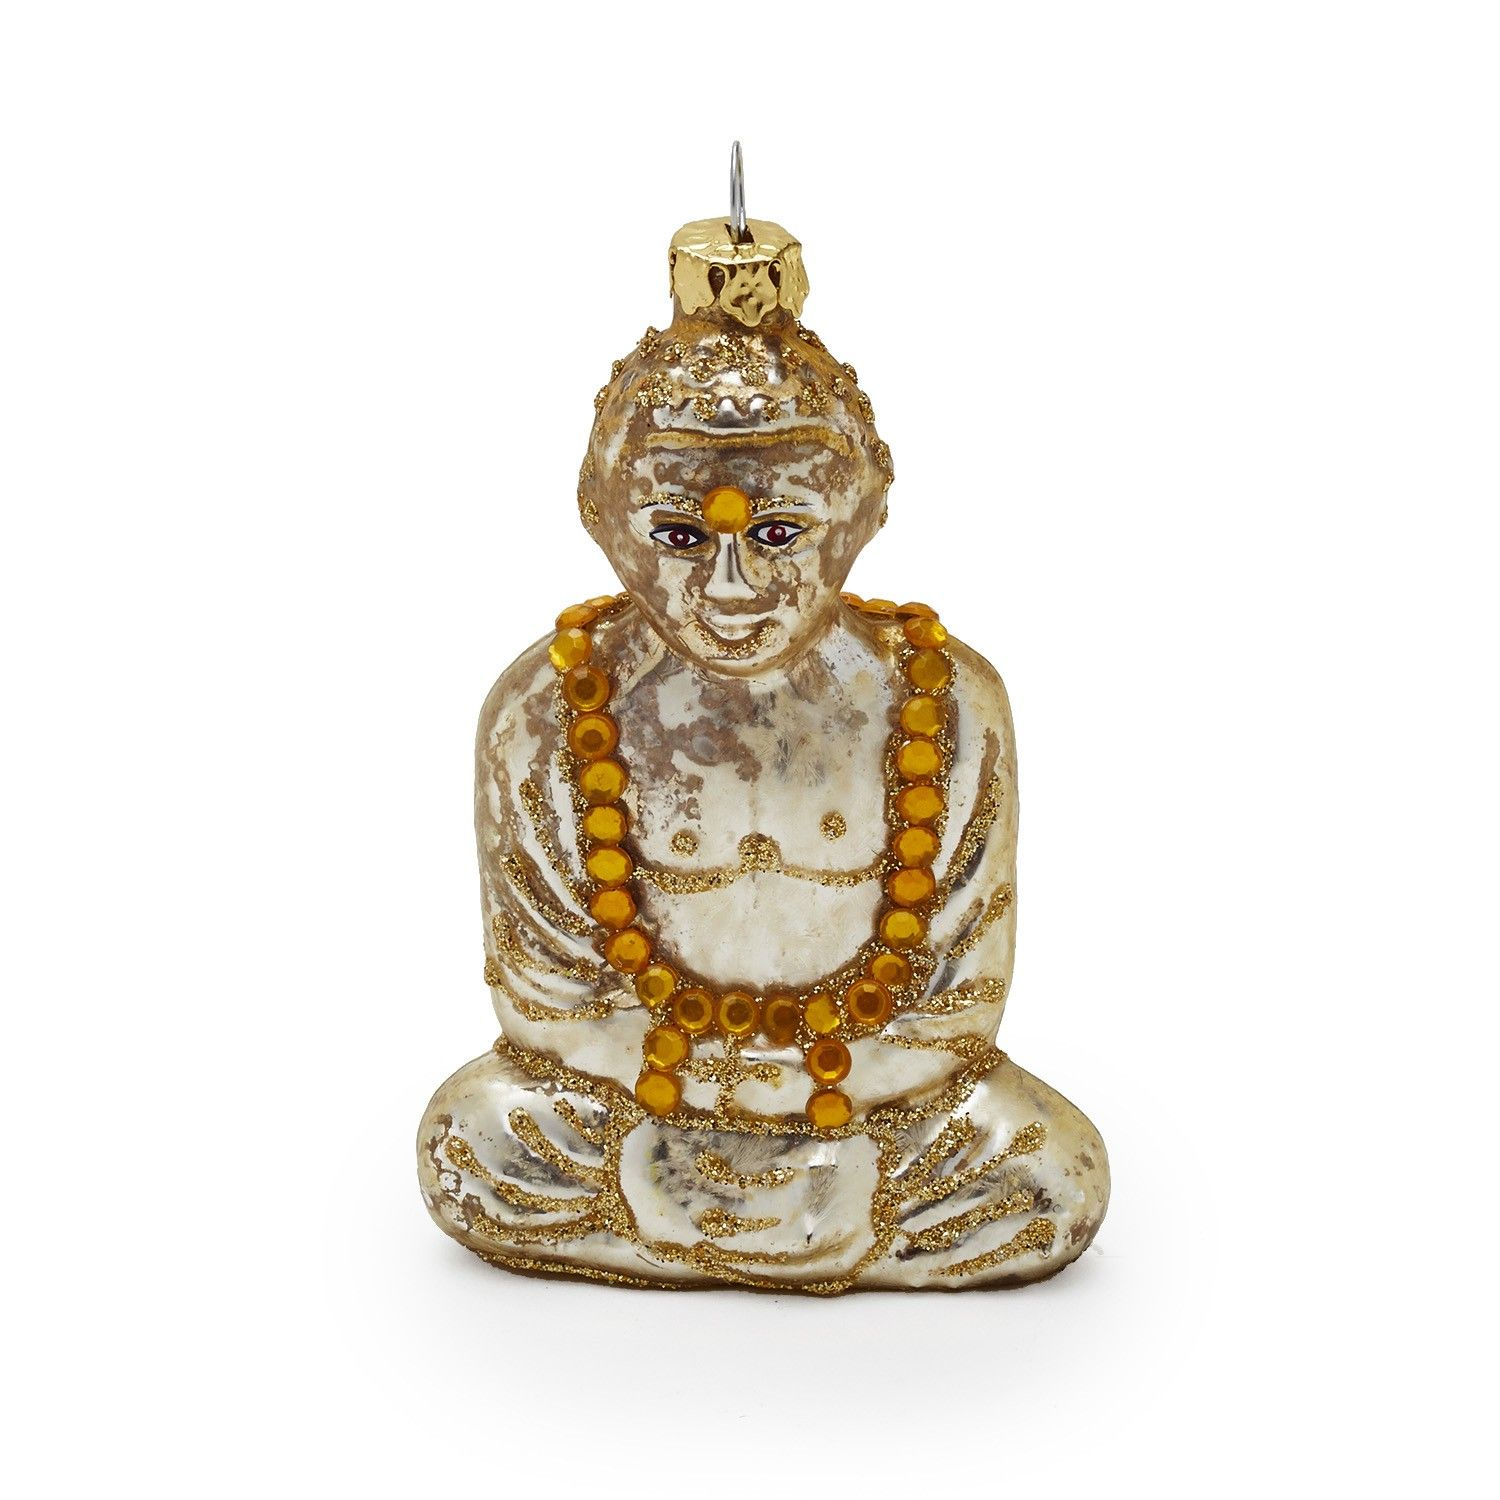 Bejeweled Buddha Ornament | Ornaments, Buddha, Christmas ...